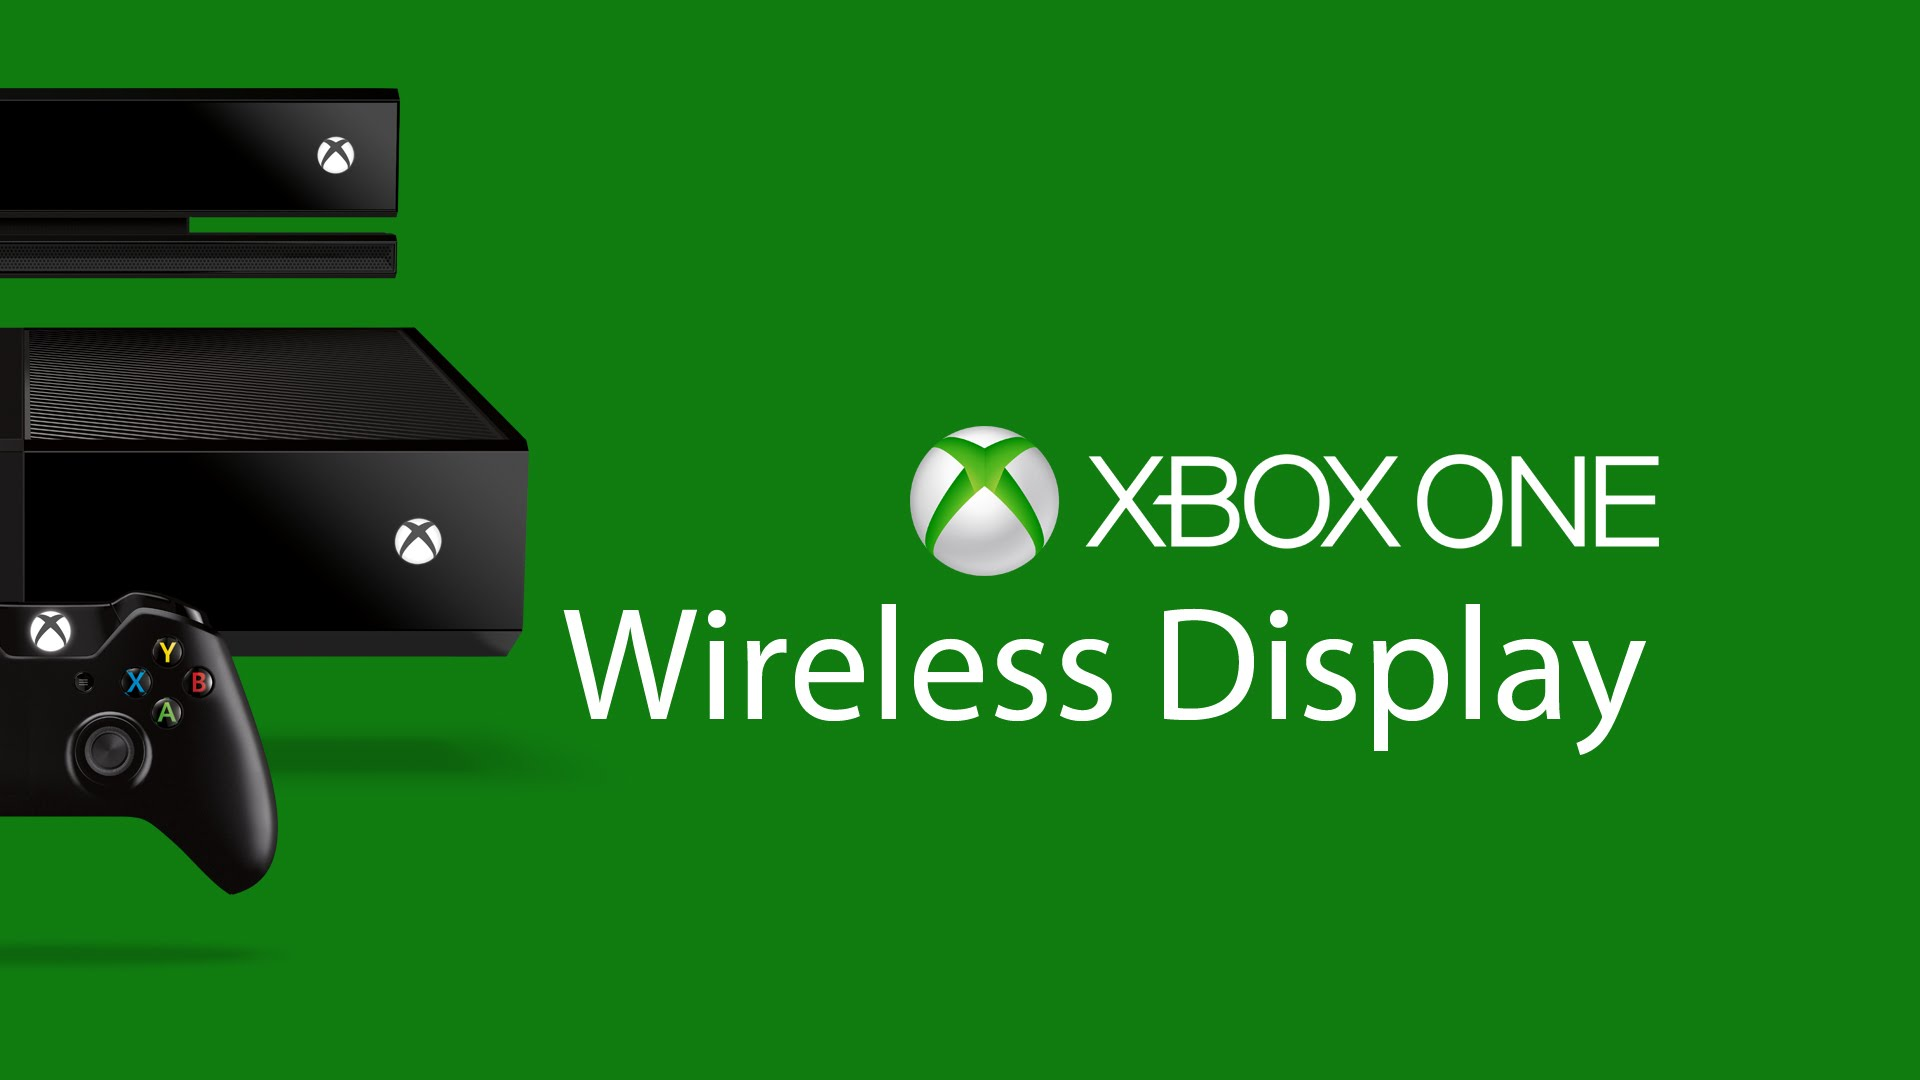 How To Use Miracast on xBox One with AirServer Screencast App